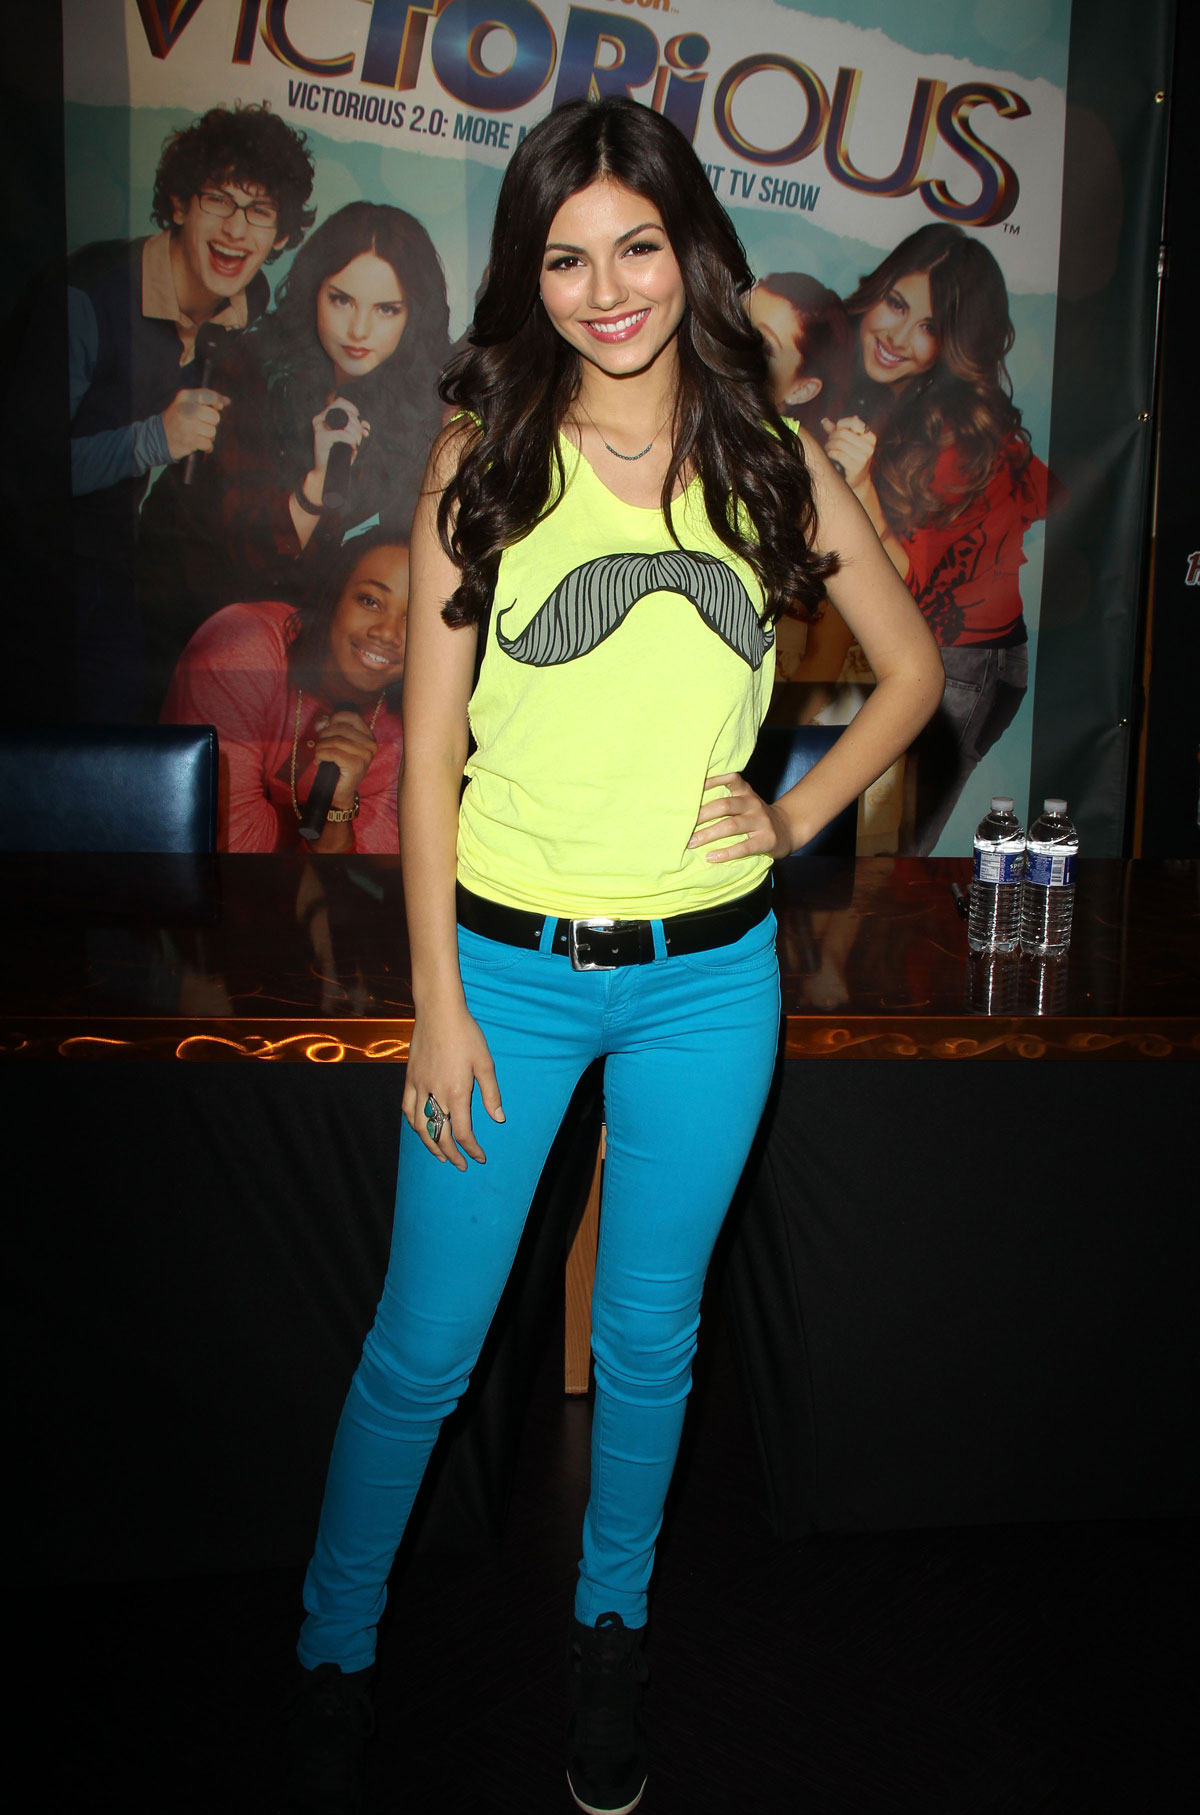 Victoria Justice At Victorious Soundtrack Signing At The